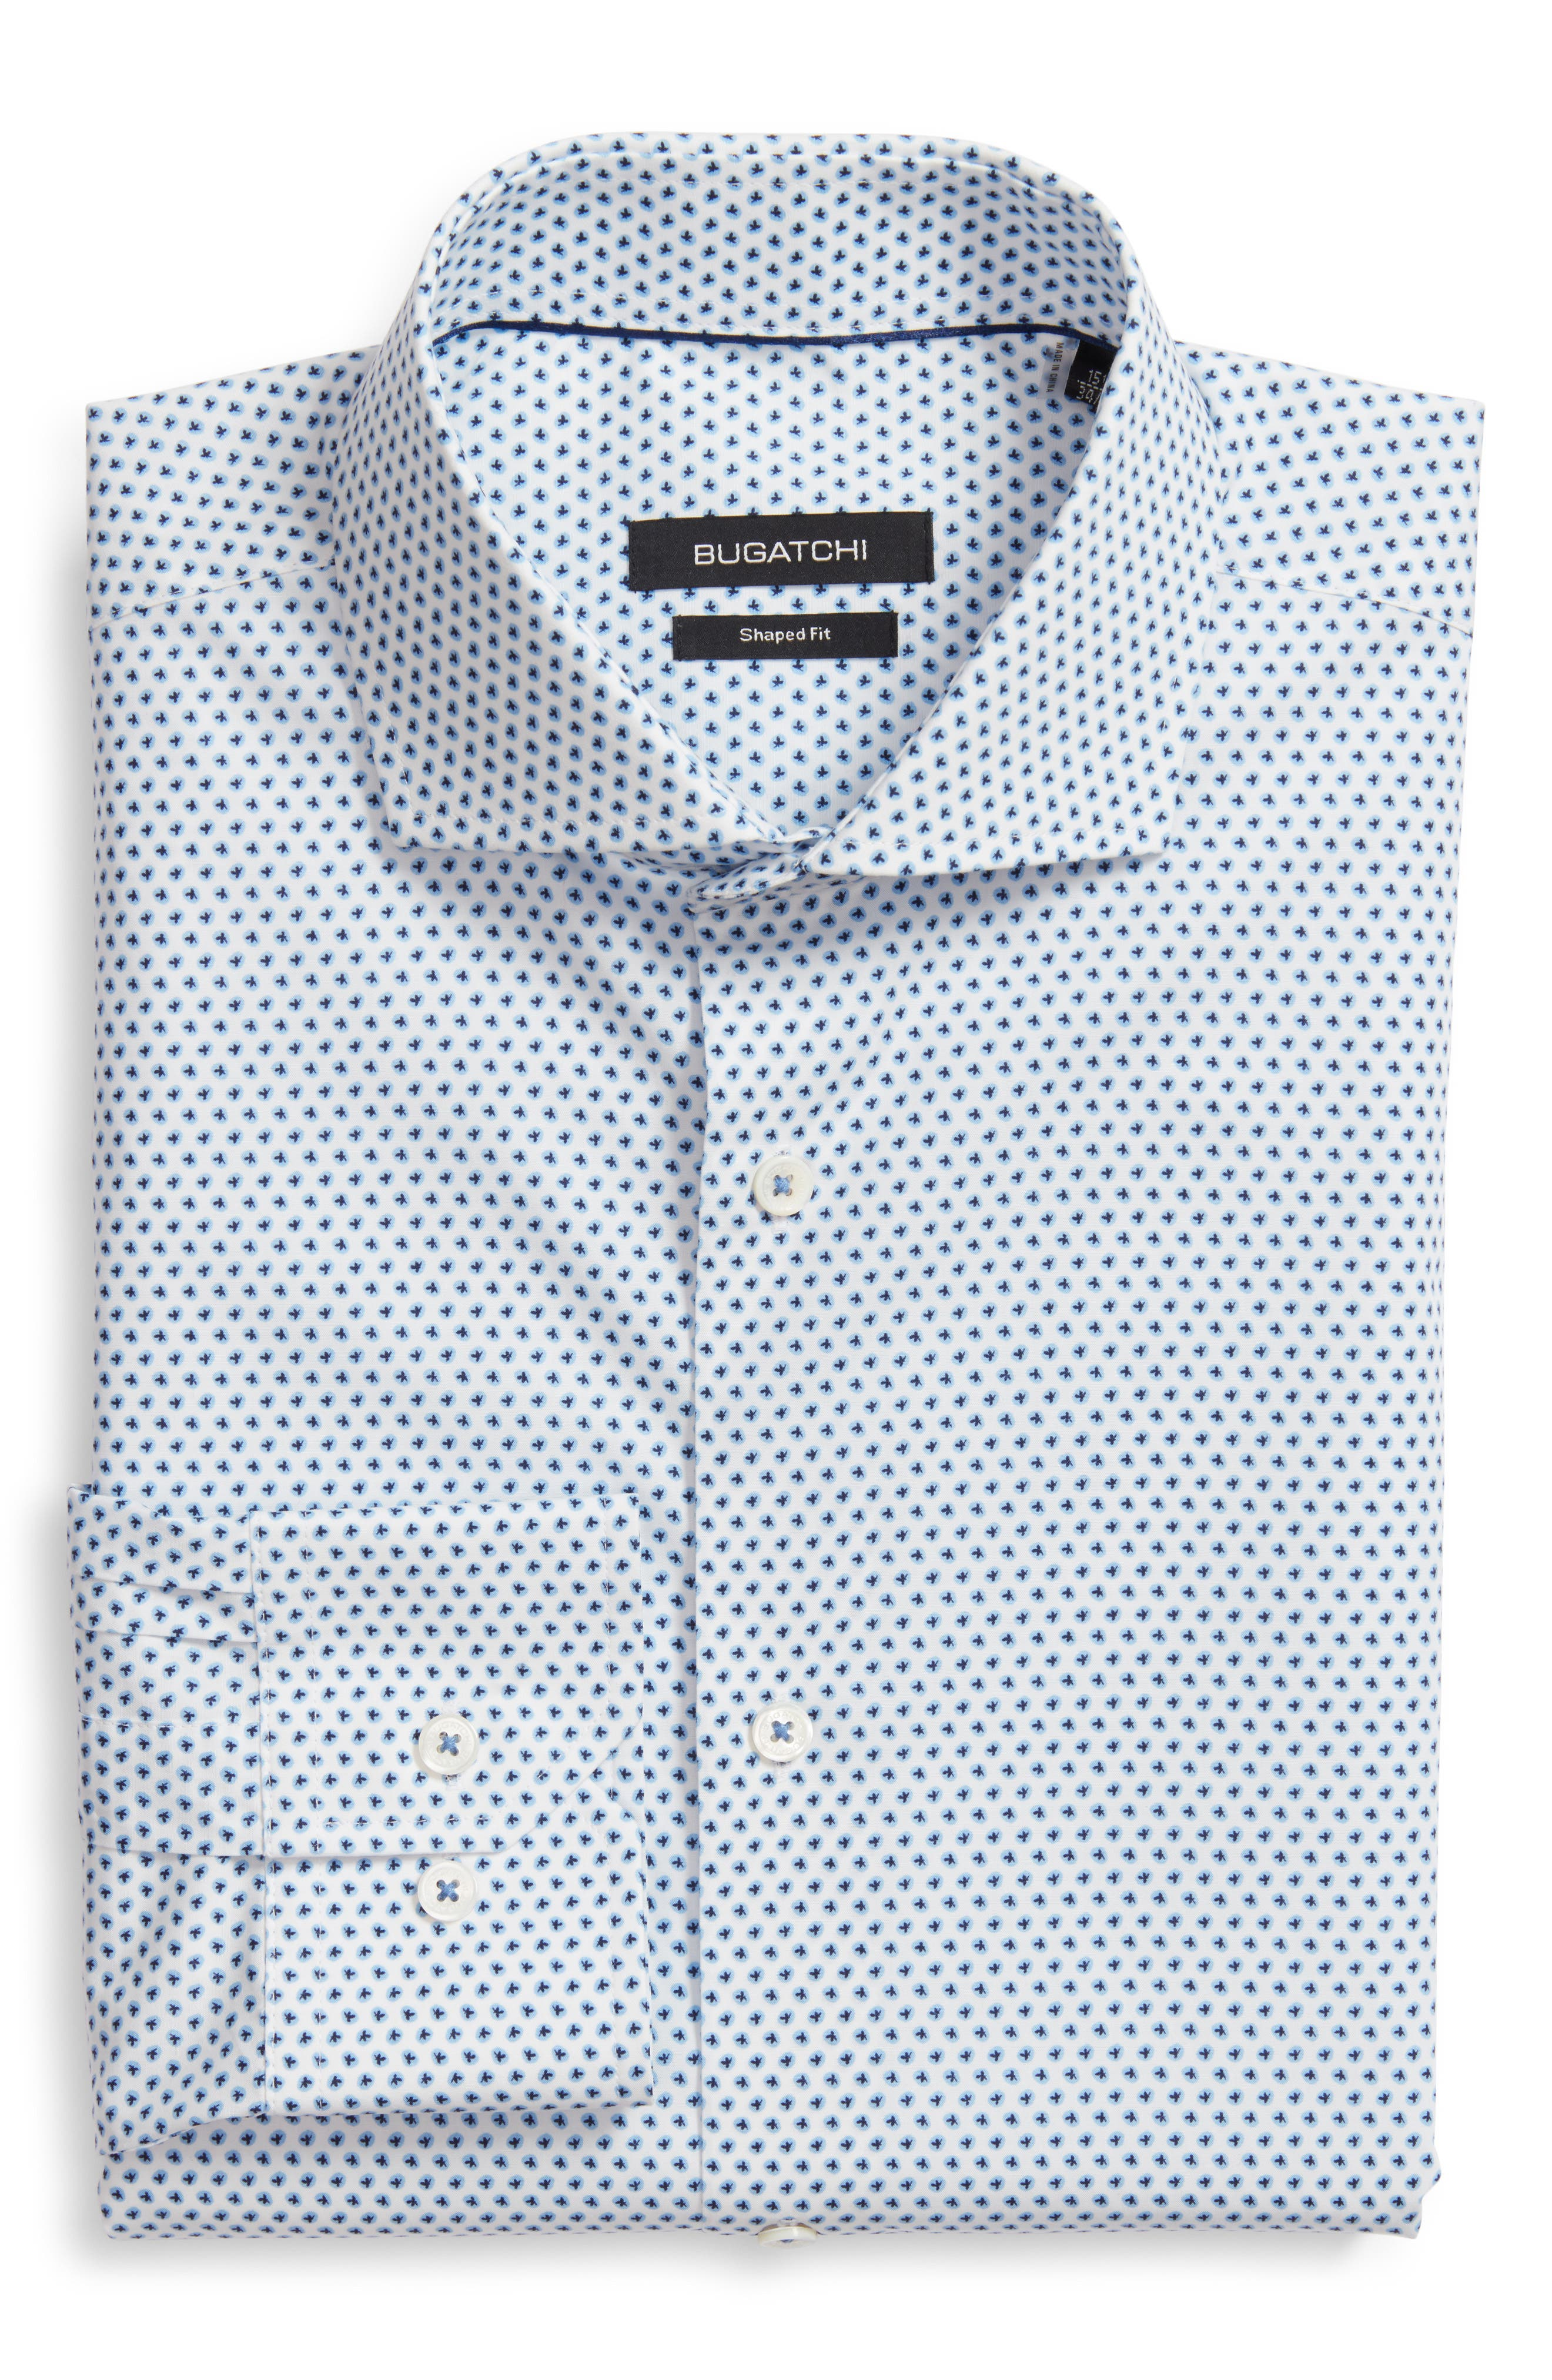 Trim Fit Print Dress Shirt,                             Main thumbnail 1, color,                             NAVY